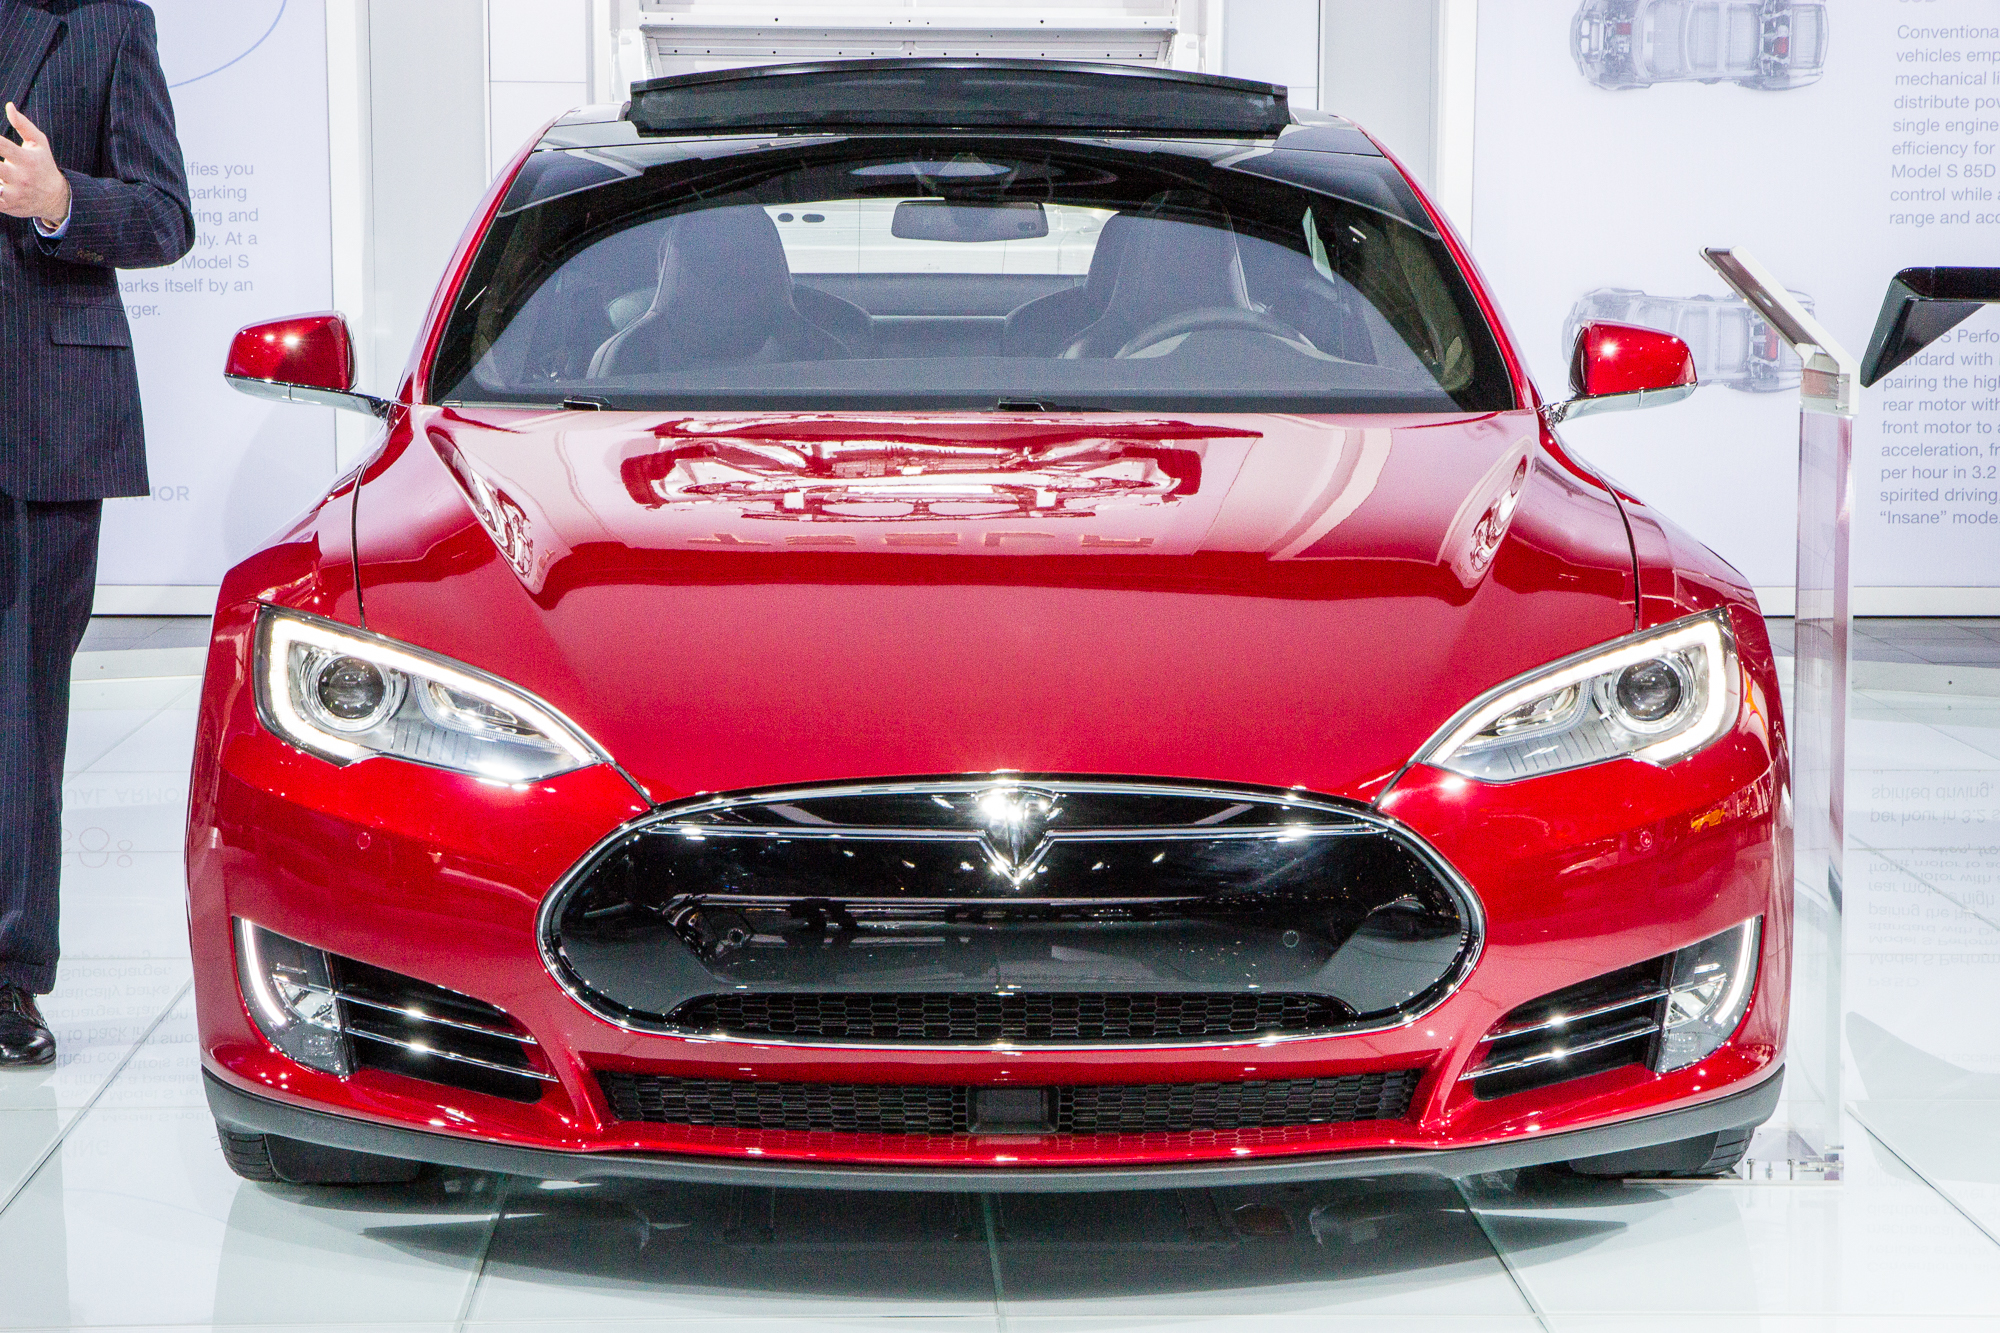 tesla model s p85d hot rod now has shortest delivery time. Black Bedroom Furniture Sets. Home Design Ideas